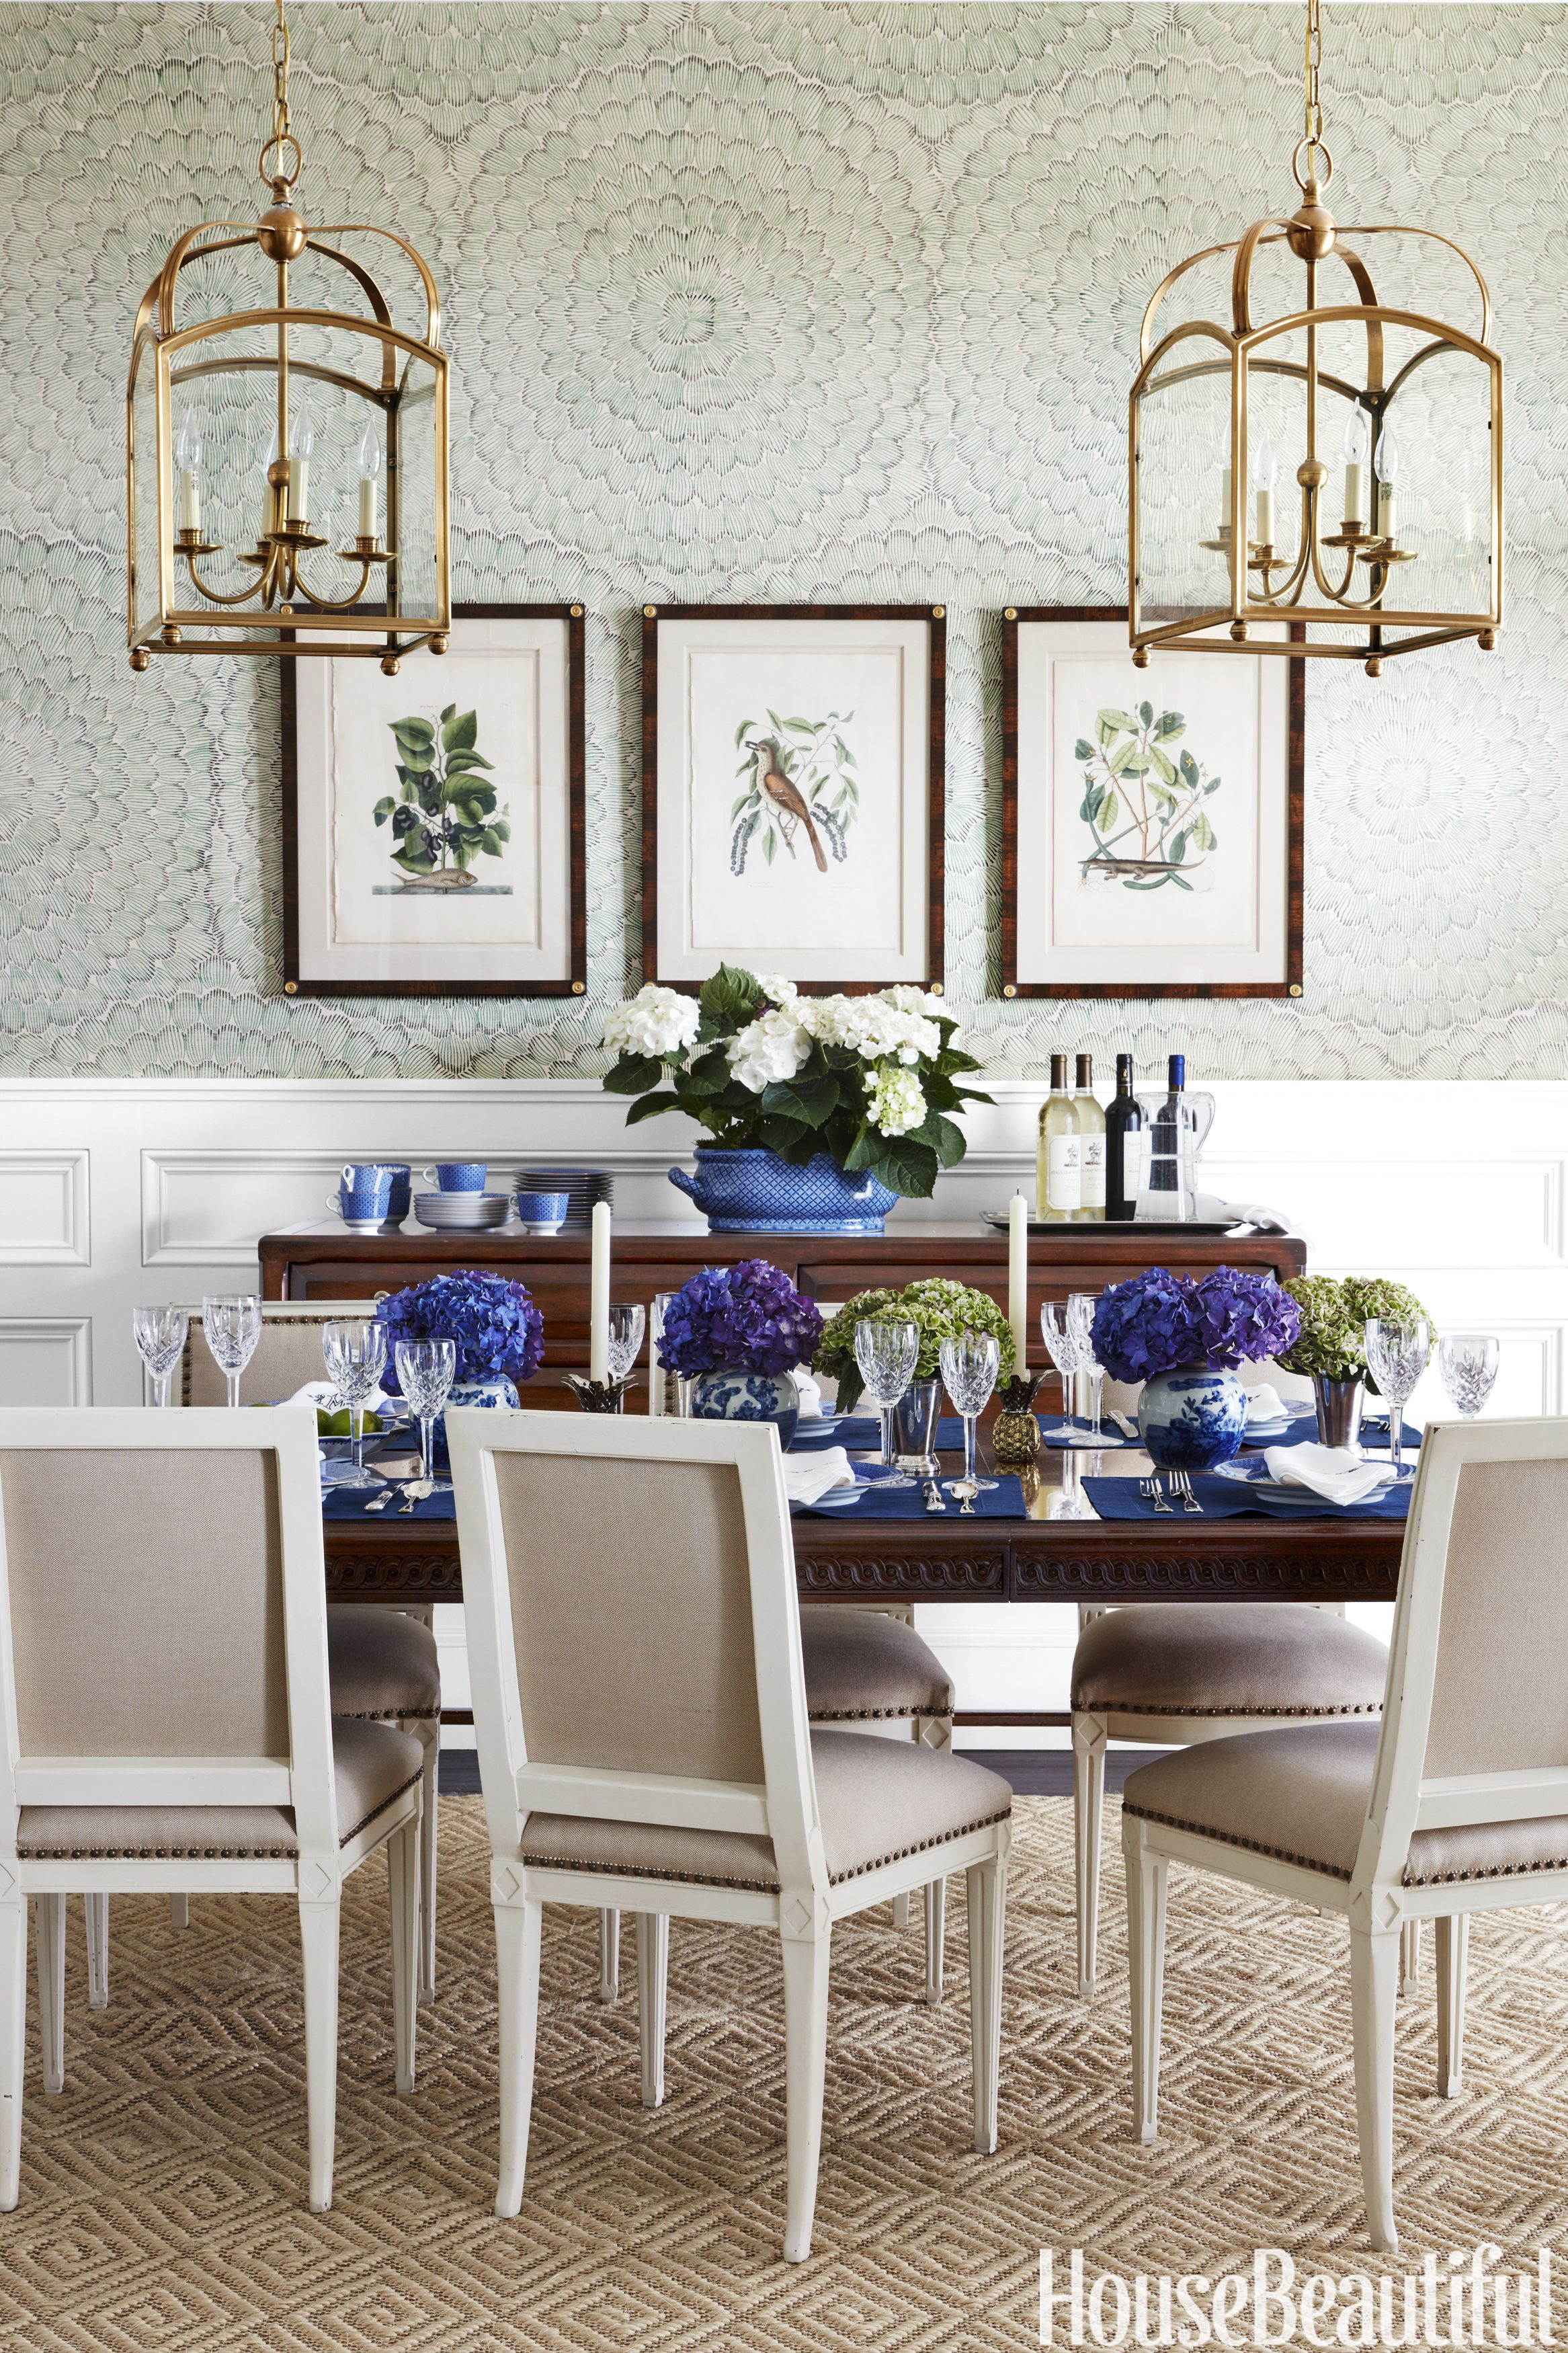 Good Create The Ultimate Entertaining Space With These Gorgeous Ideas.